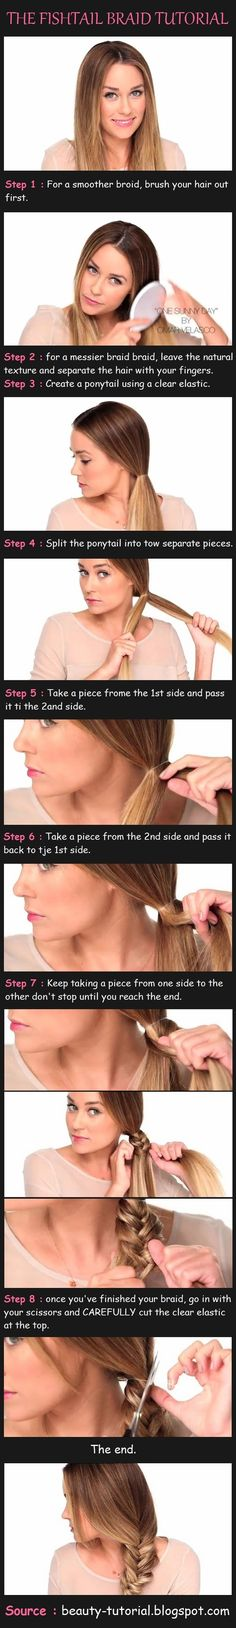 The Fishtail Braid Tutorial. Easy to follow, but the OCD in me is a little bothered by all the spelling errors/typos. lol